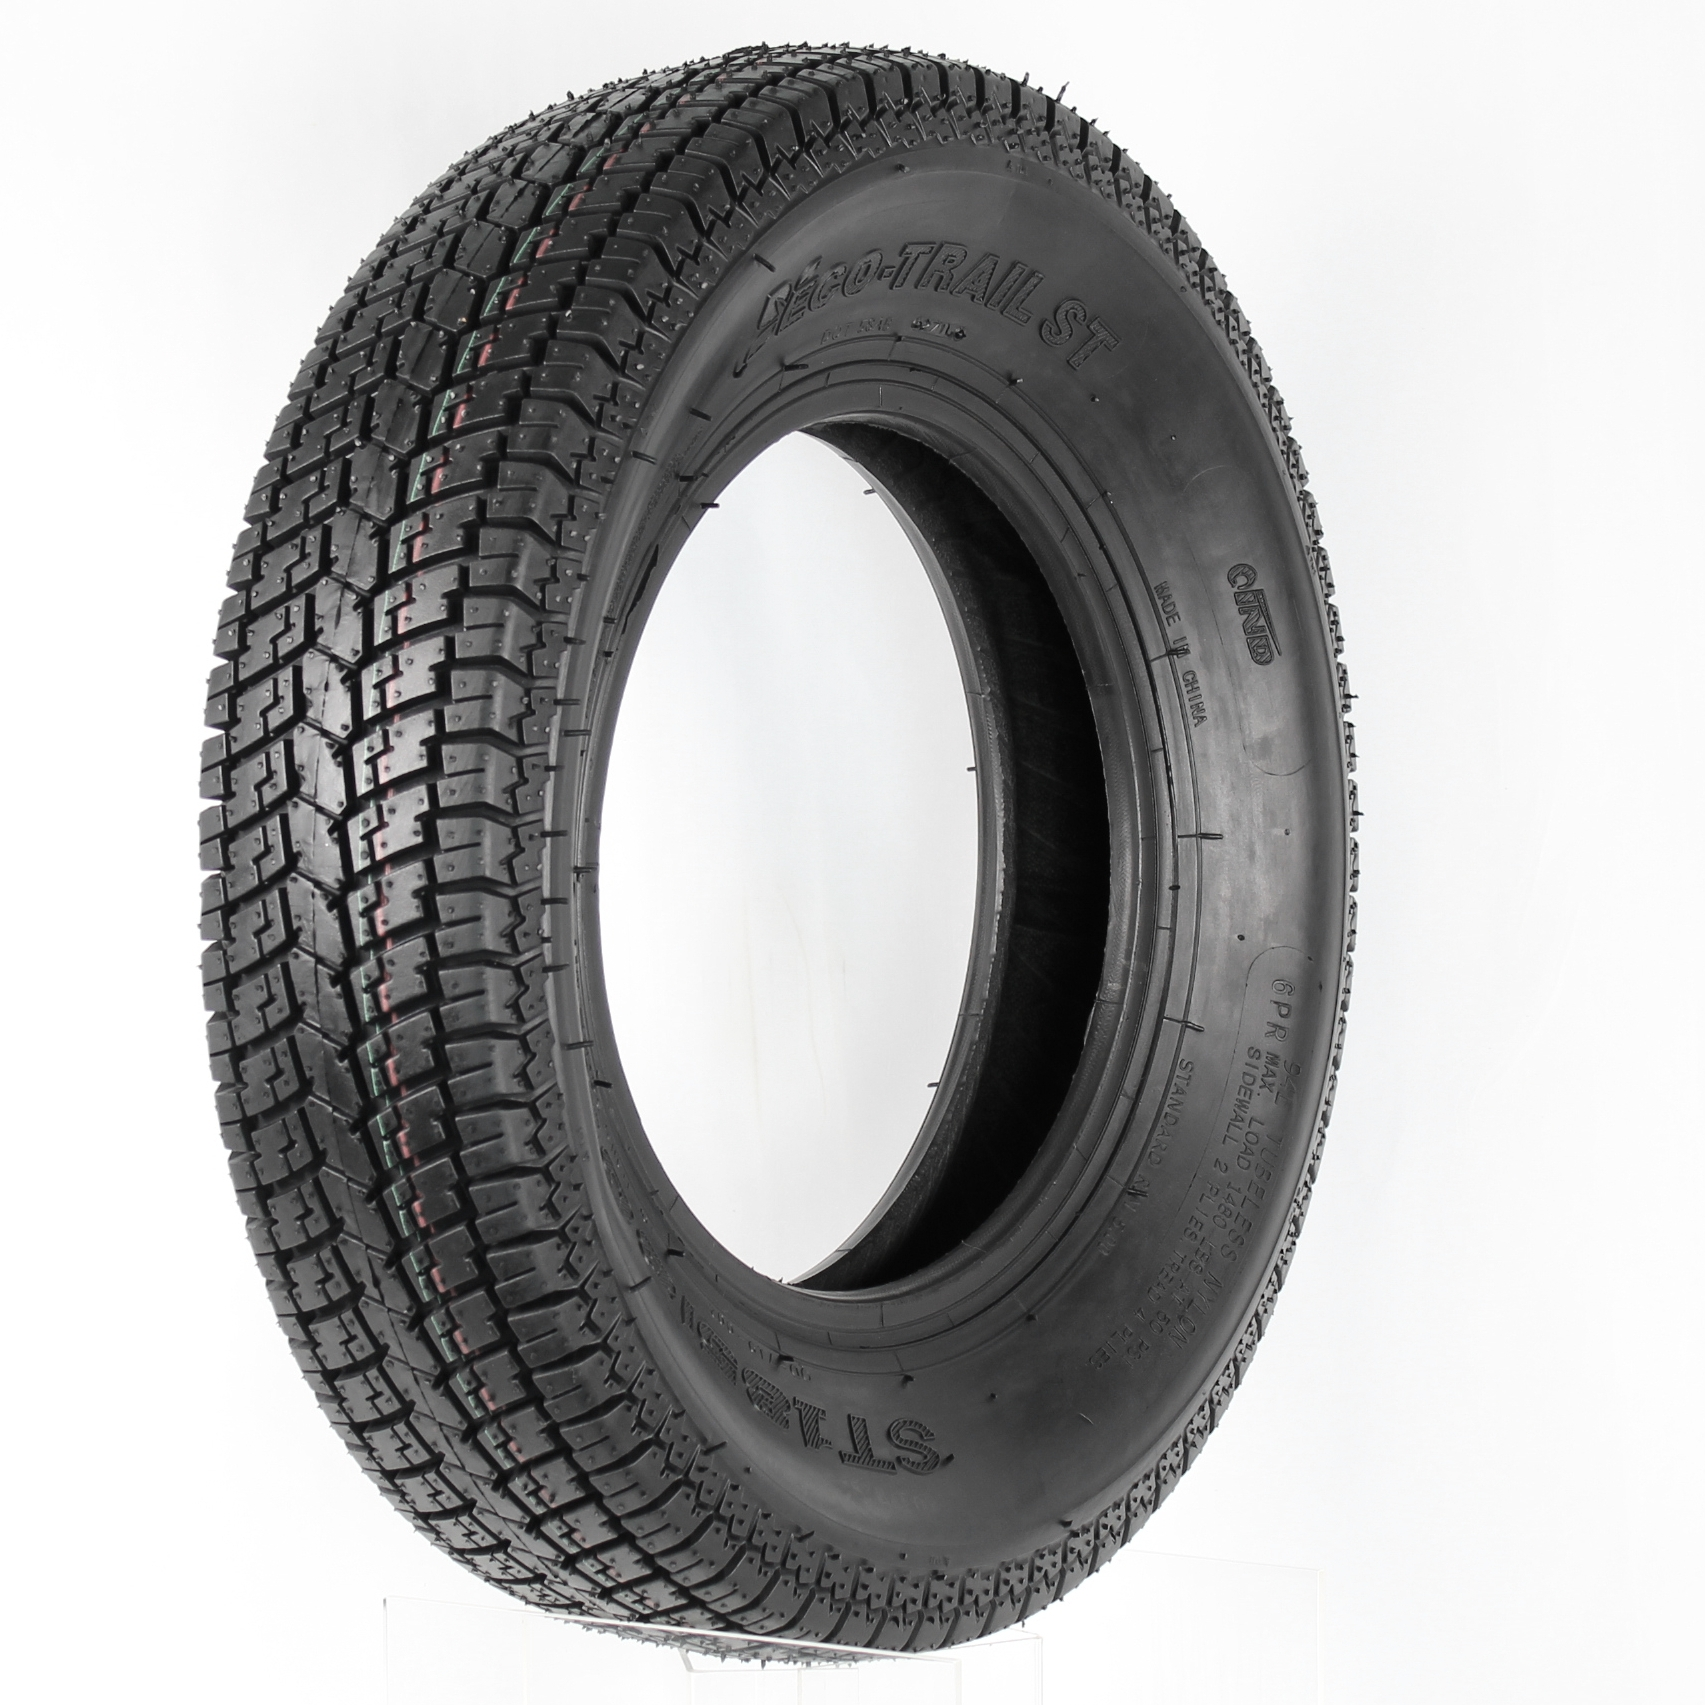 Eco-Trail ST185/80D13 LRD Bias Tire  Image